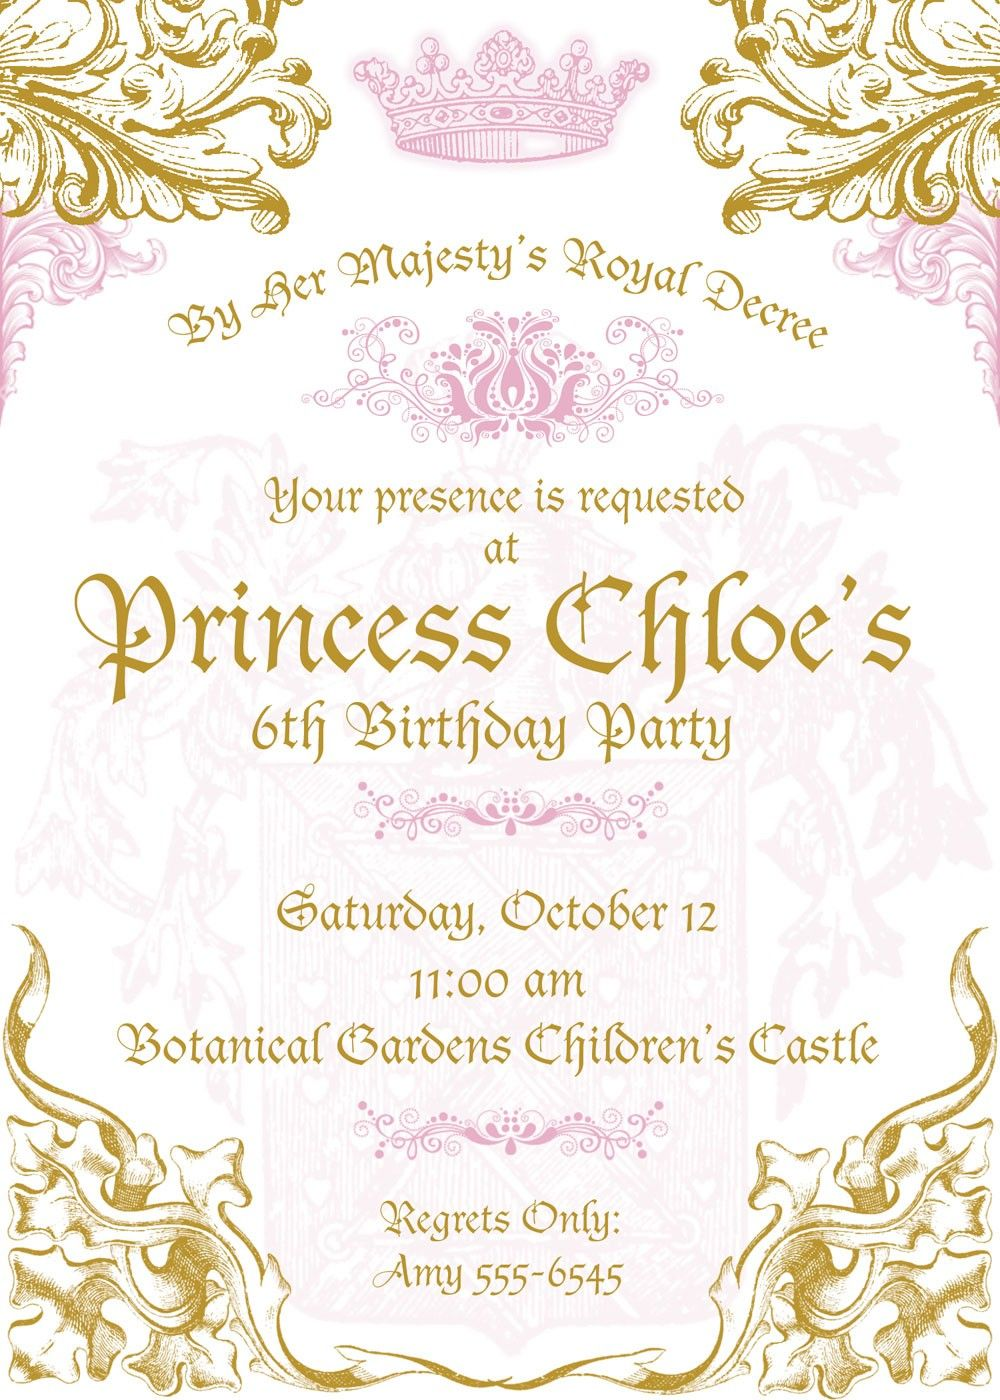 Royal Princess Invitations Digital Download By RootDown On Etsy